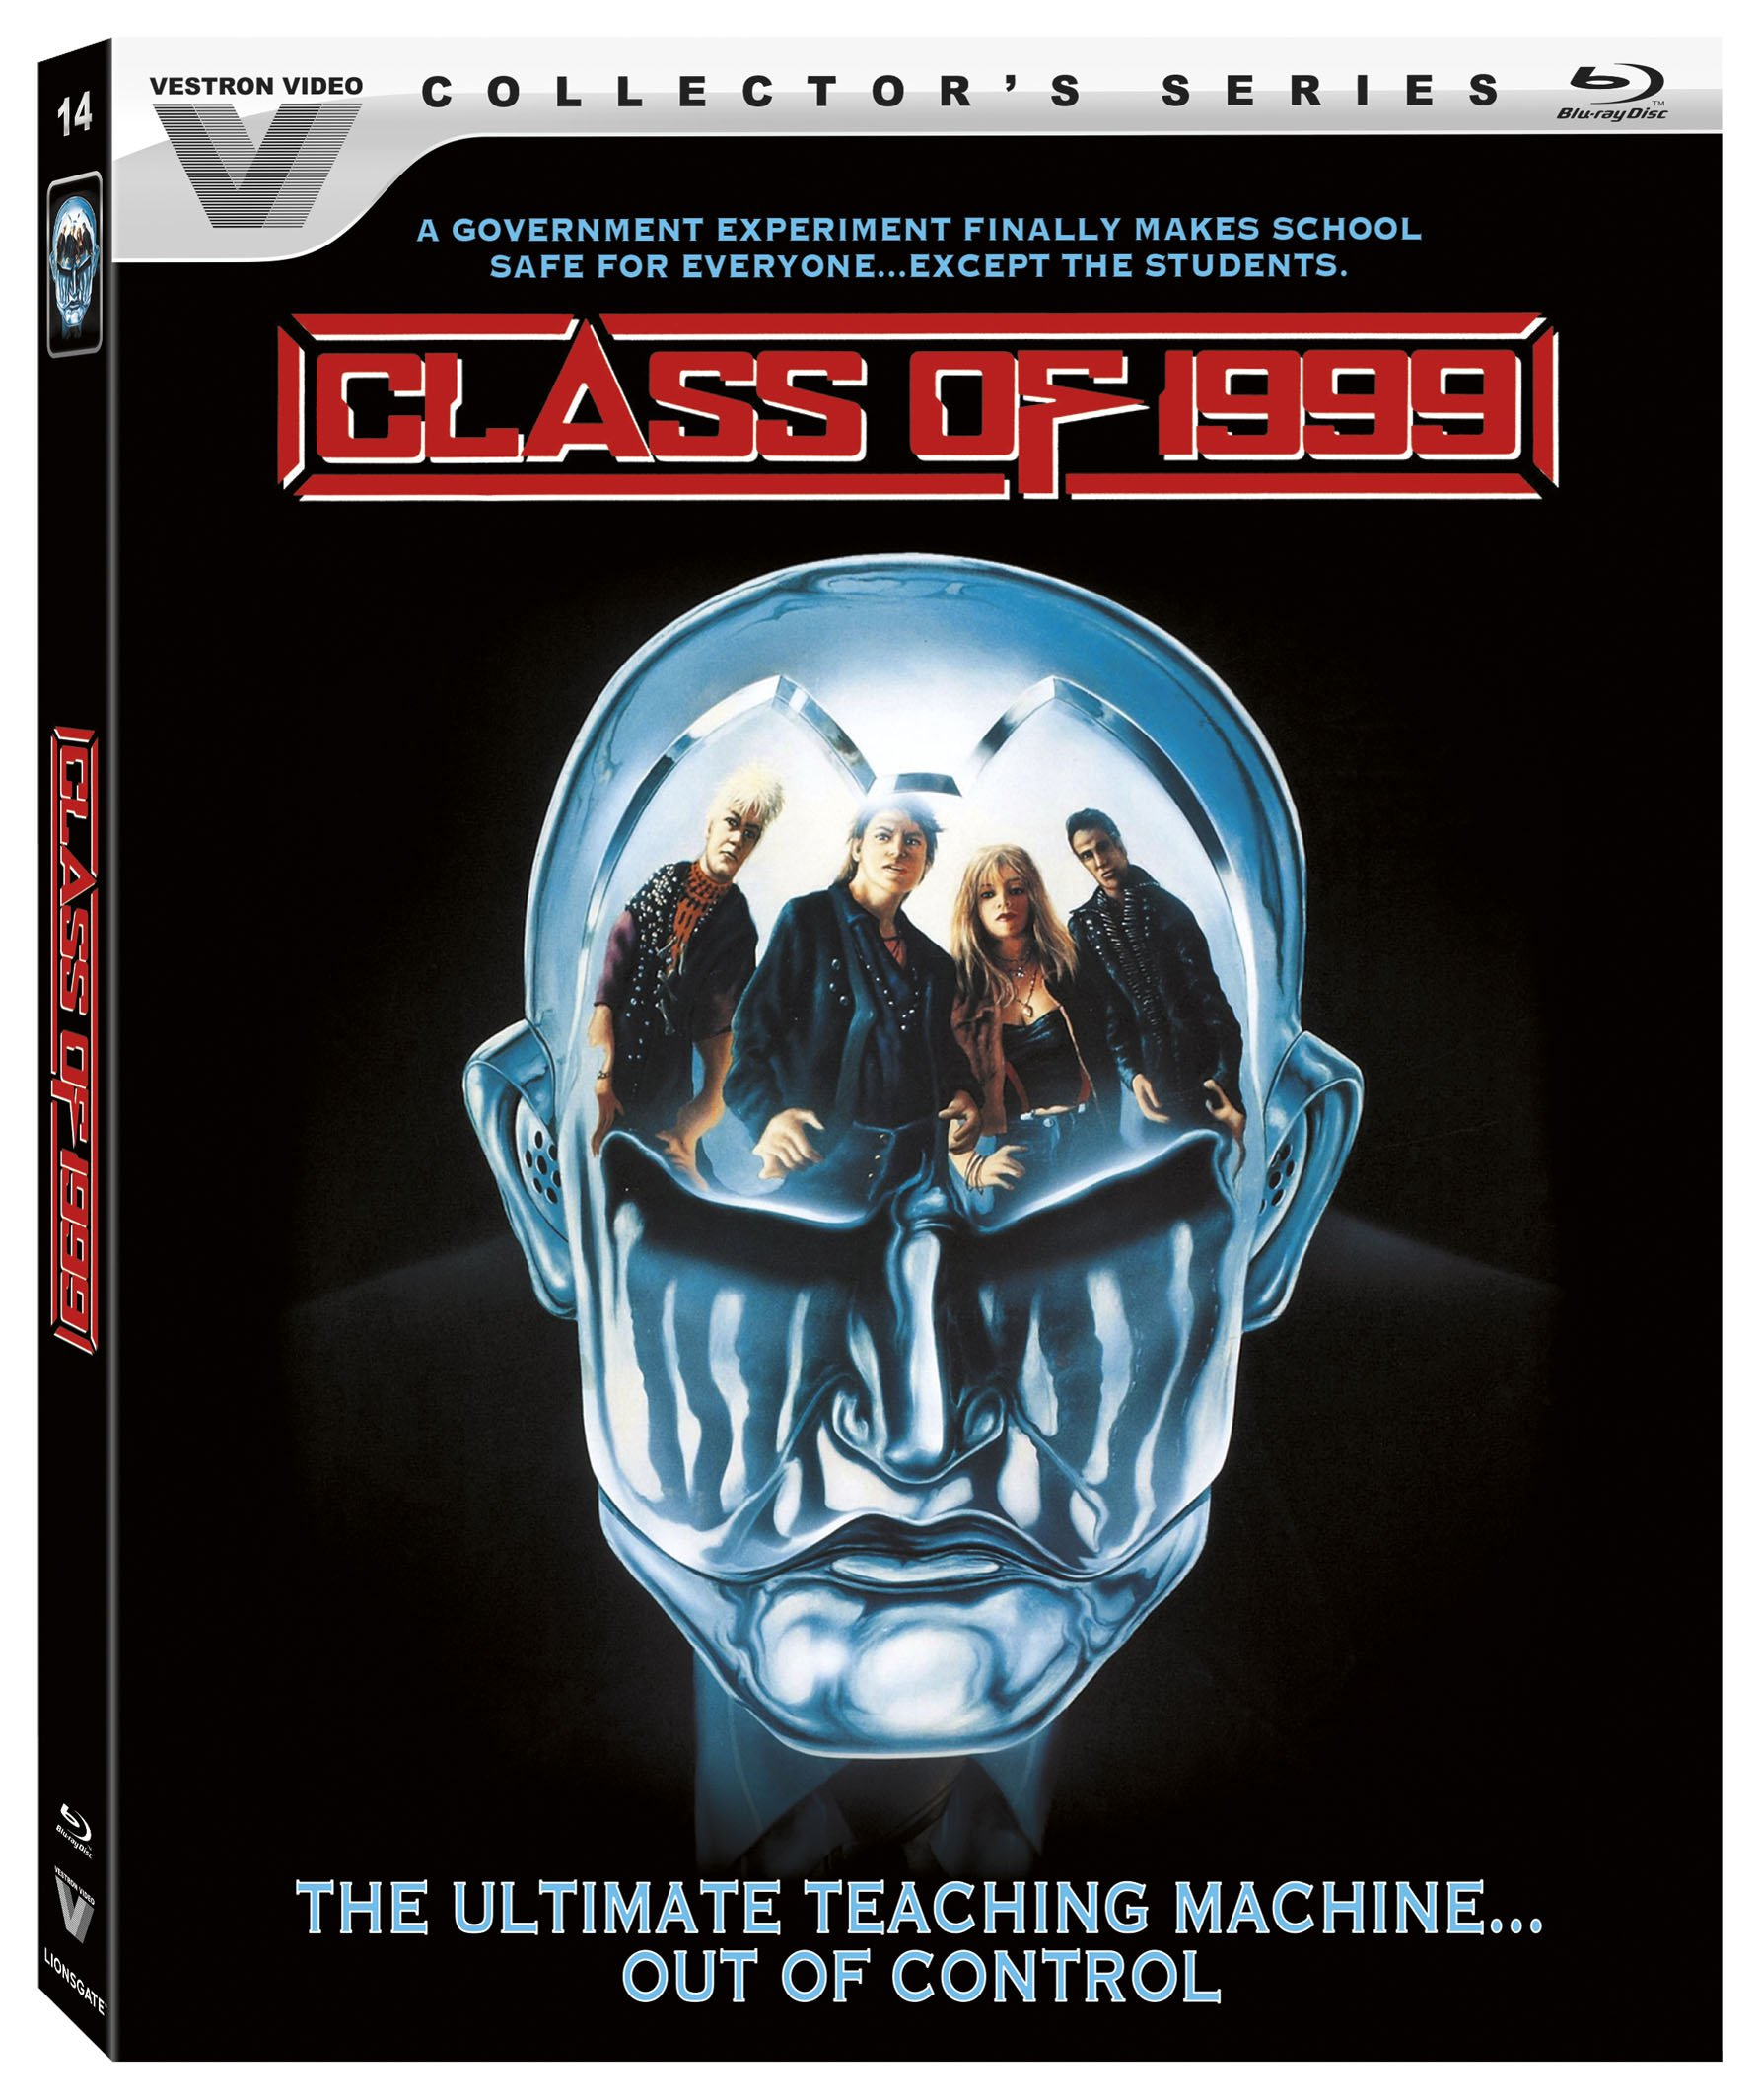 Blu-ray : Class of 1999 (Vestron Video Collector's Series) (Widescreen, , Digital Theater System)